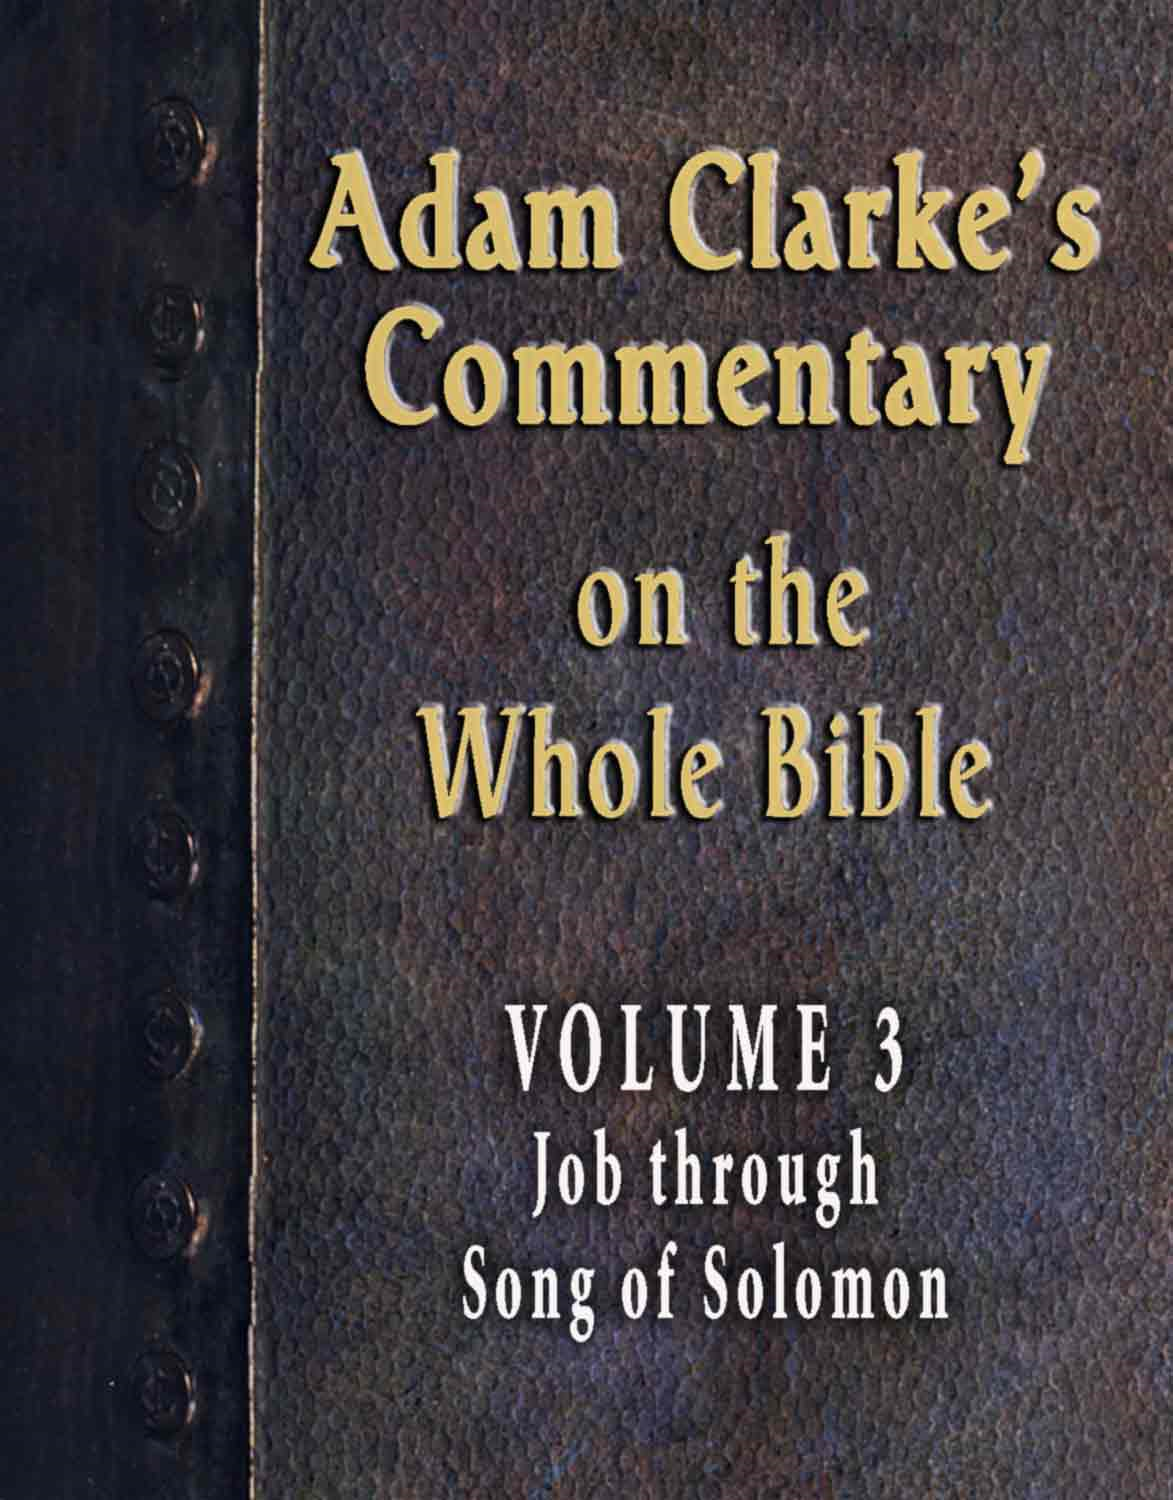 Adam Clarke's Commentary on the Whole Bible-Volume 3-Job through Song of Solomon